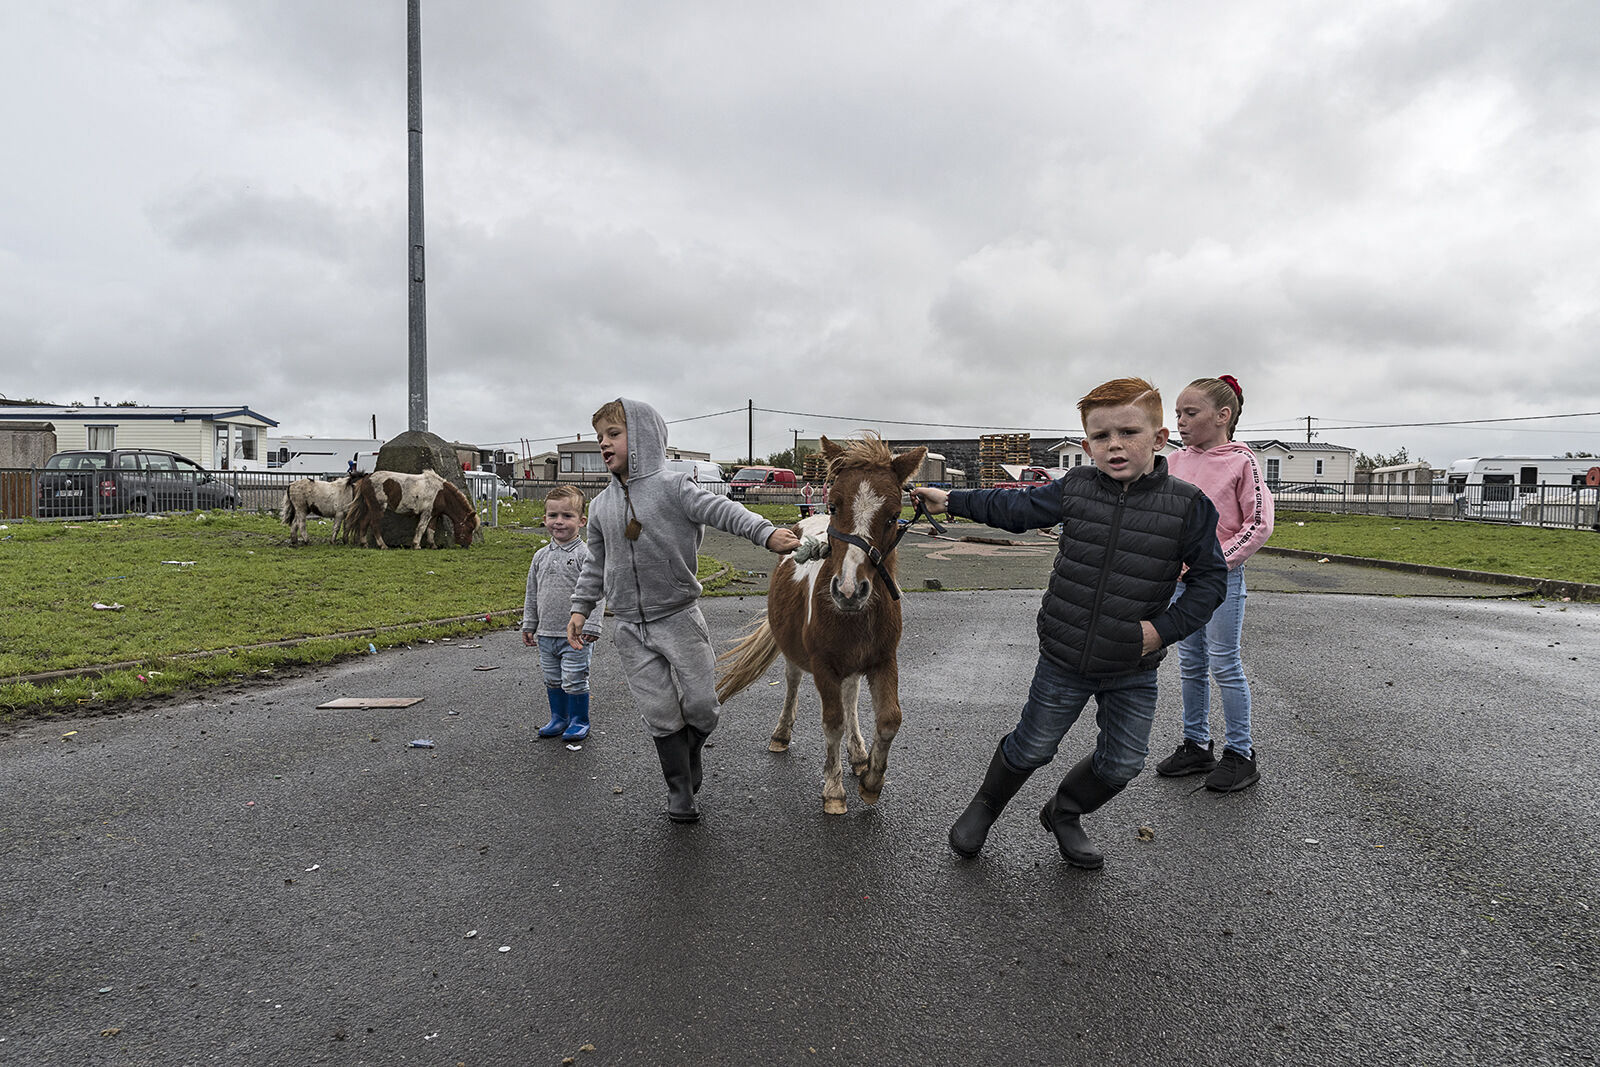 Kids with Pony, Galway, Ireland 2019